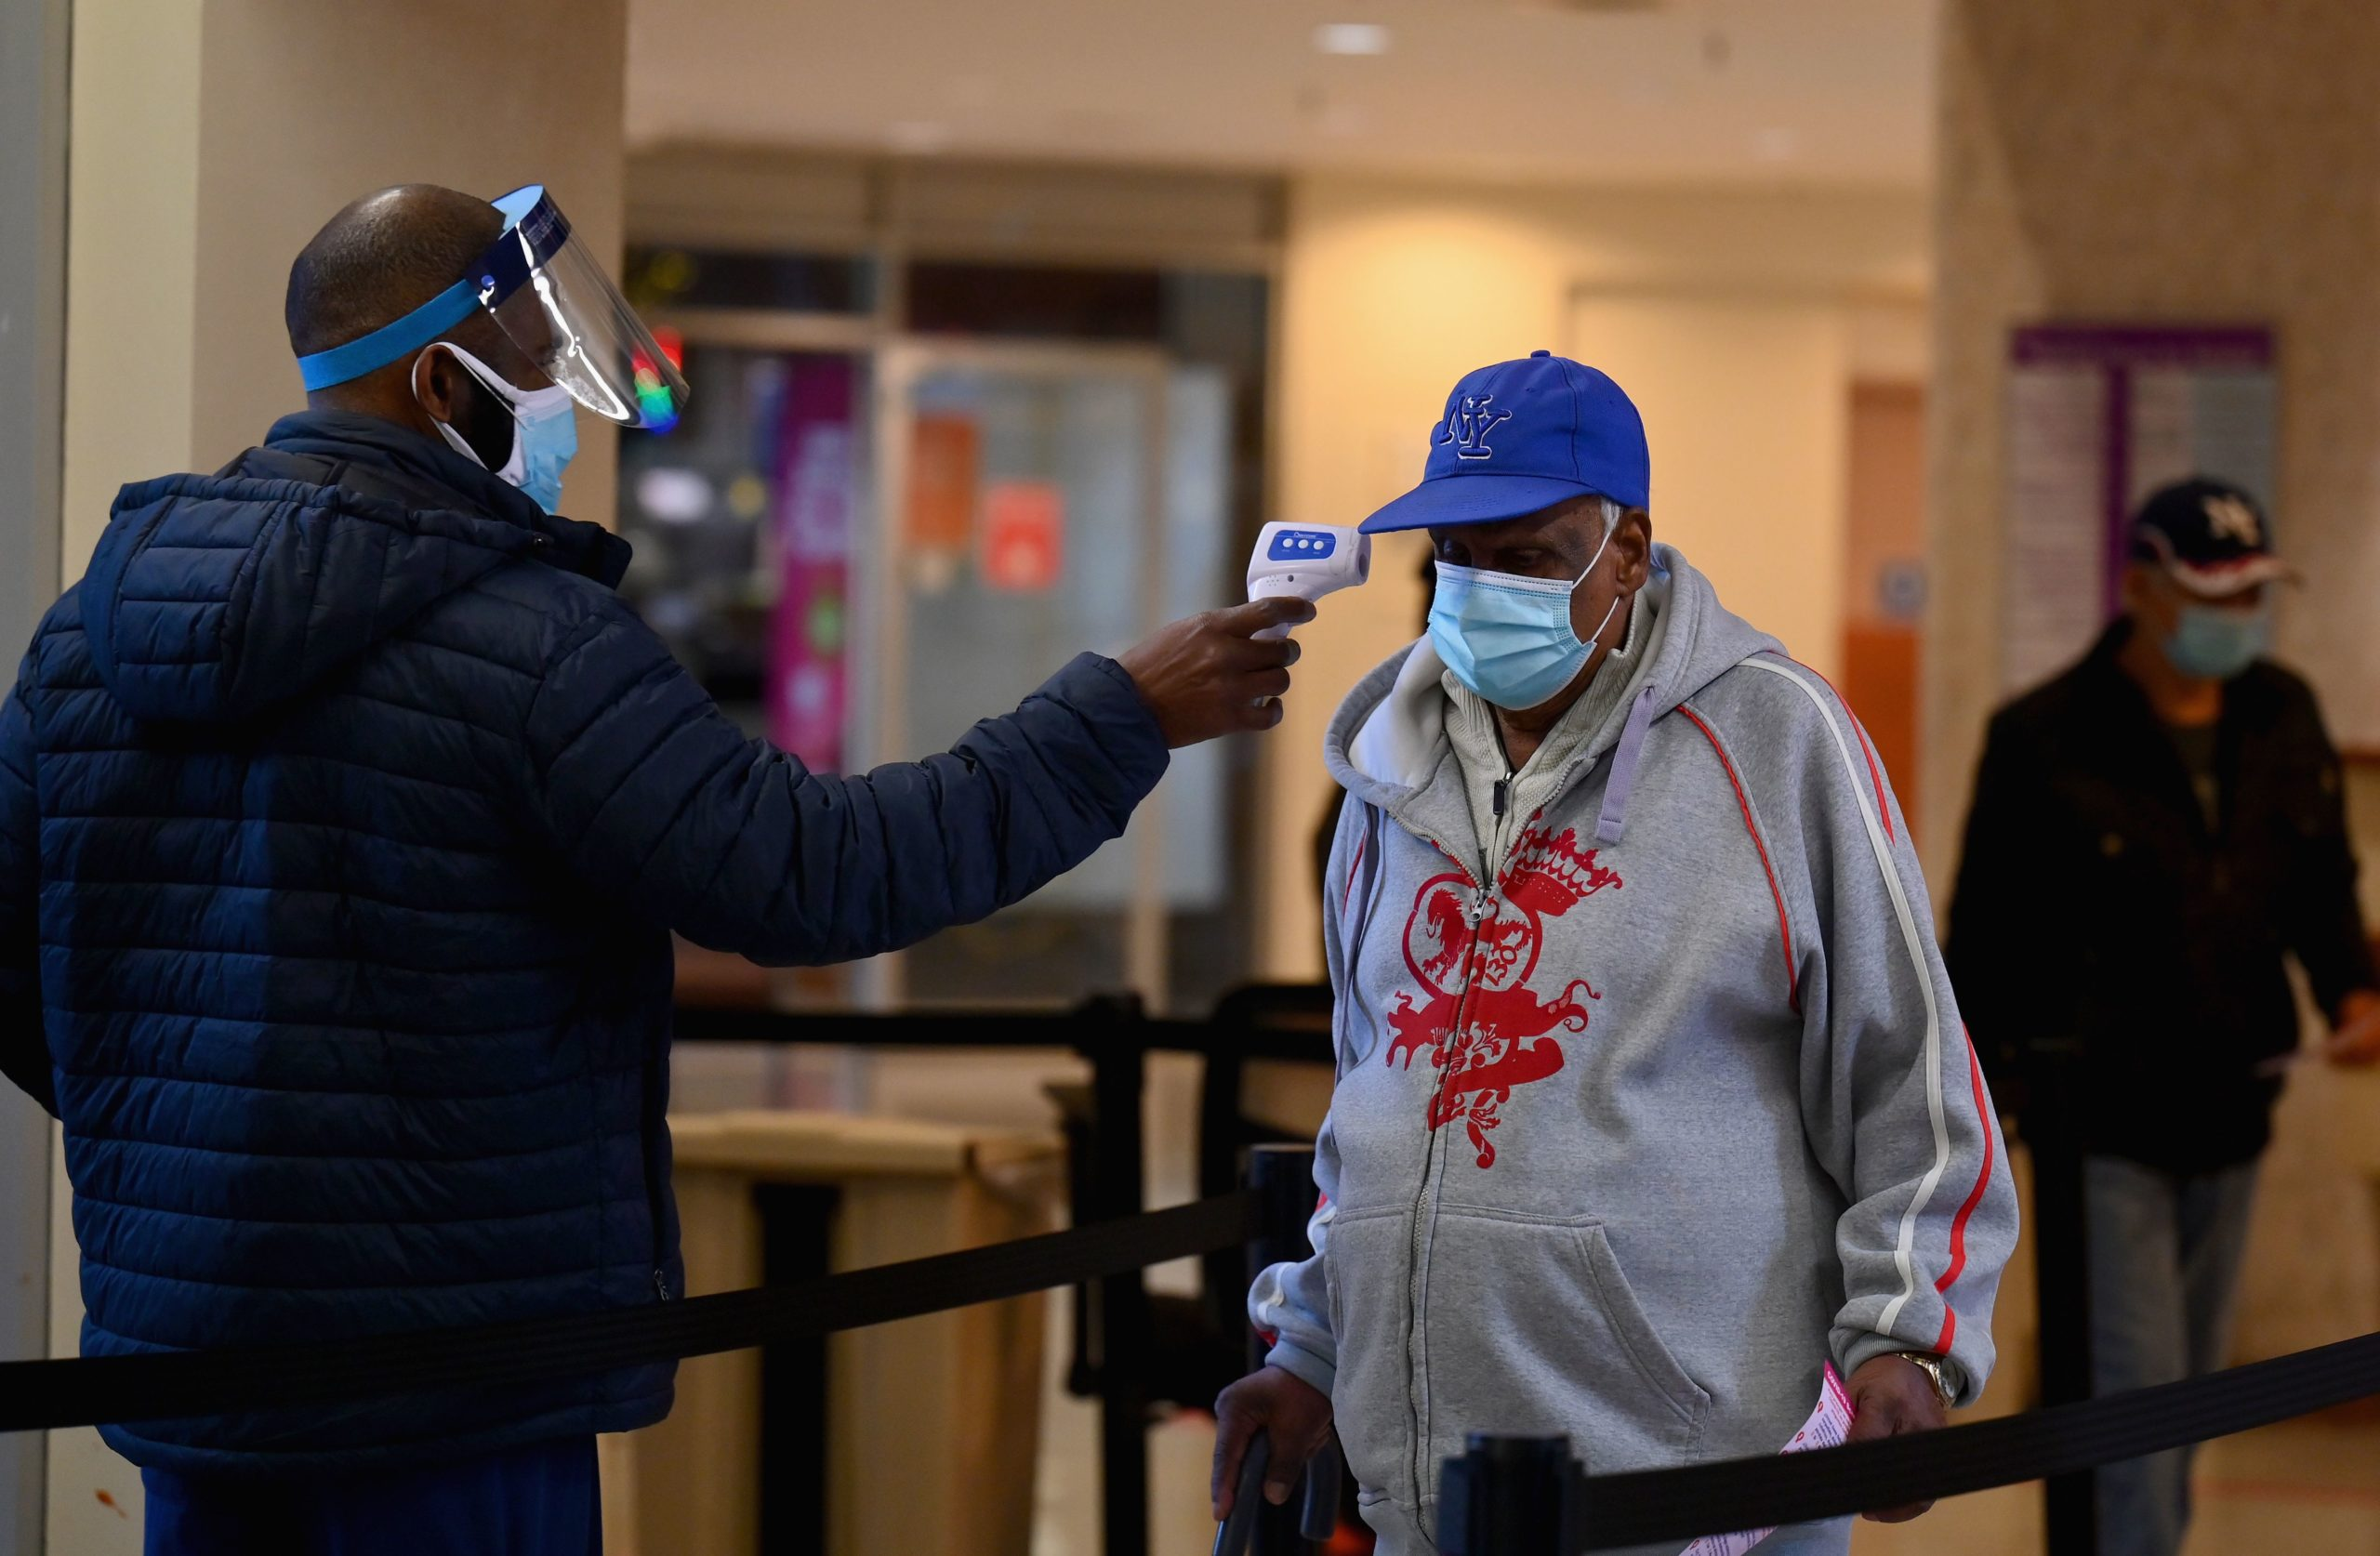 A staff member checks the temperature of a visitor at Woodhull Medical and Mental Health Center on Dec. 1 in New York City. (Angela Weiss/AFP via Getty Images)